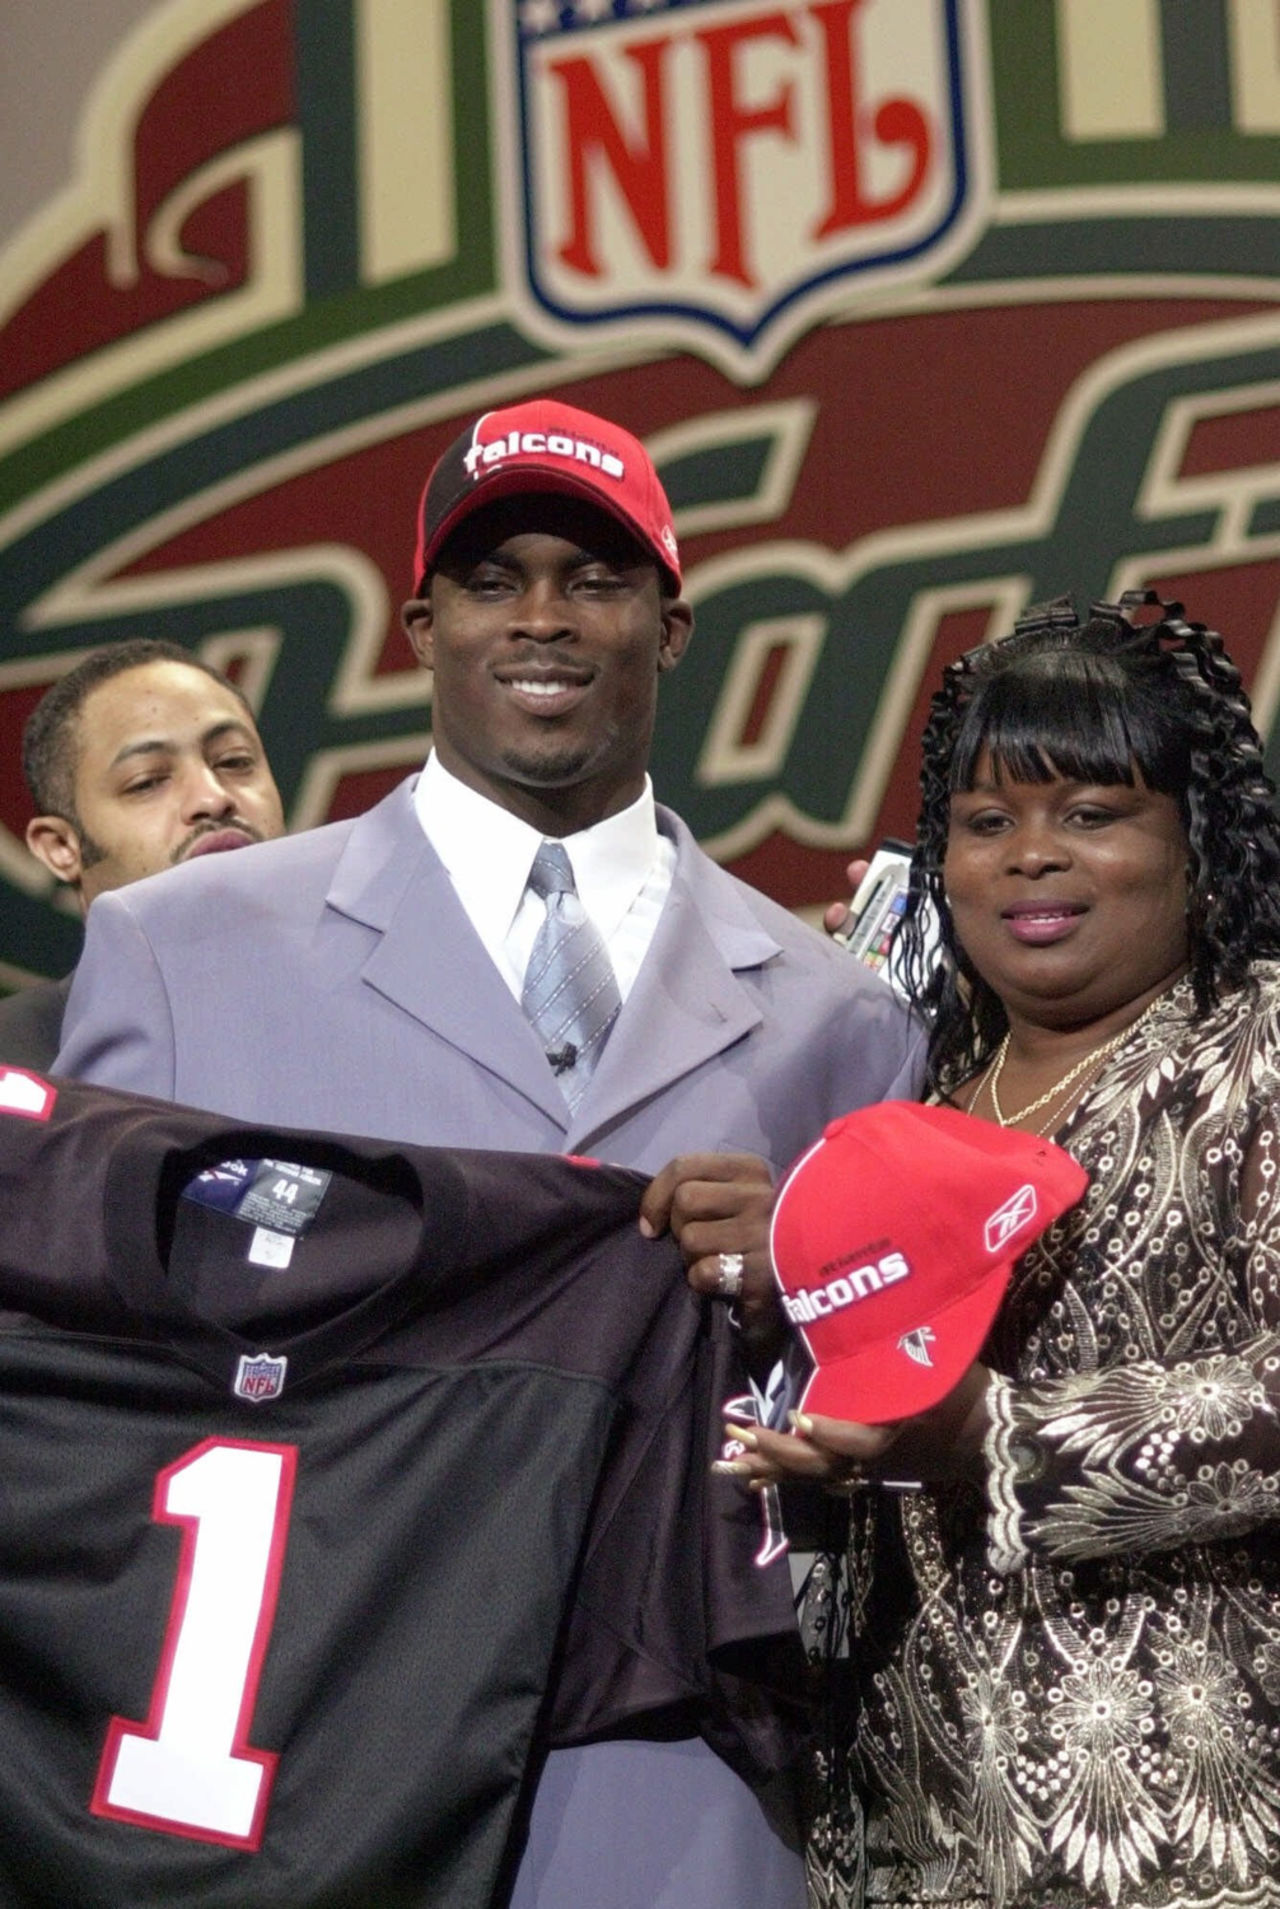 Quarterback Michael Vick, left, of Virginia Tech, poses with his mother Brenda Boddie, after he was selected by the Atlanta Falcons as the No. 1 overall pick in the NFL Draft Saturday, April 21, 2001, in New York.